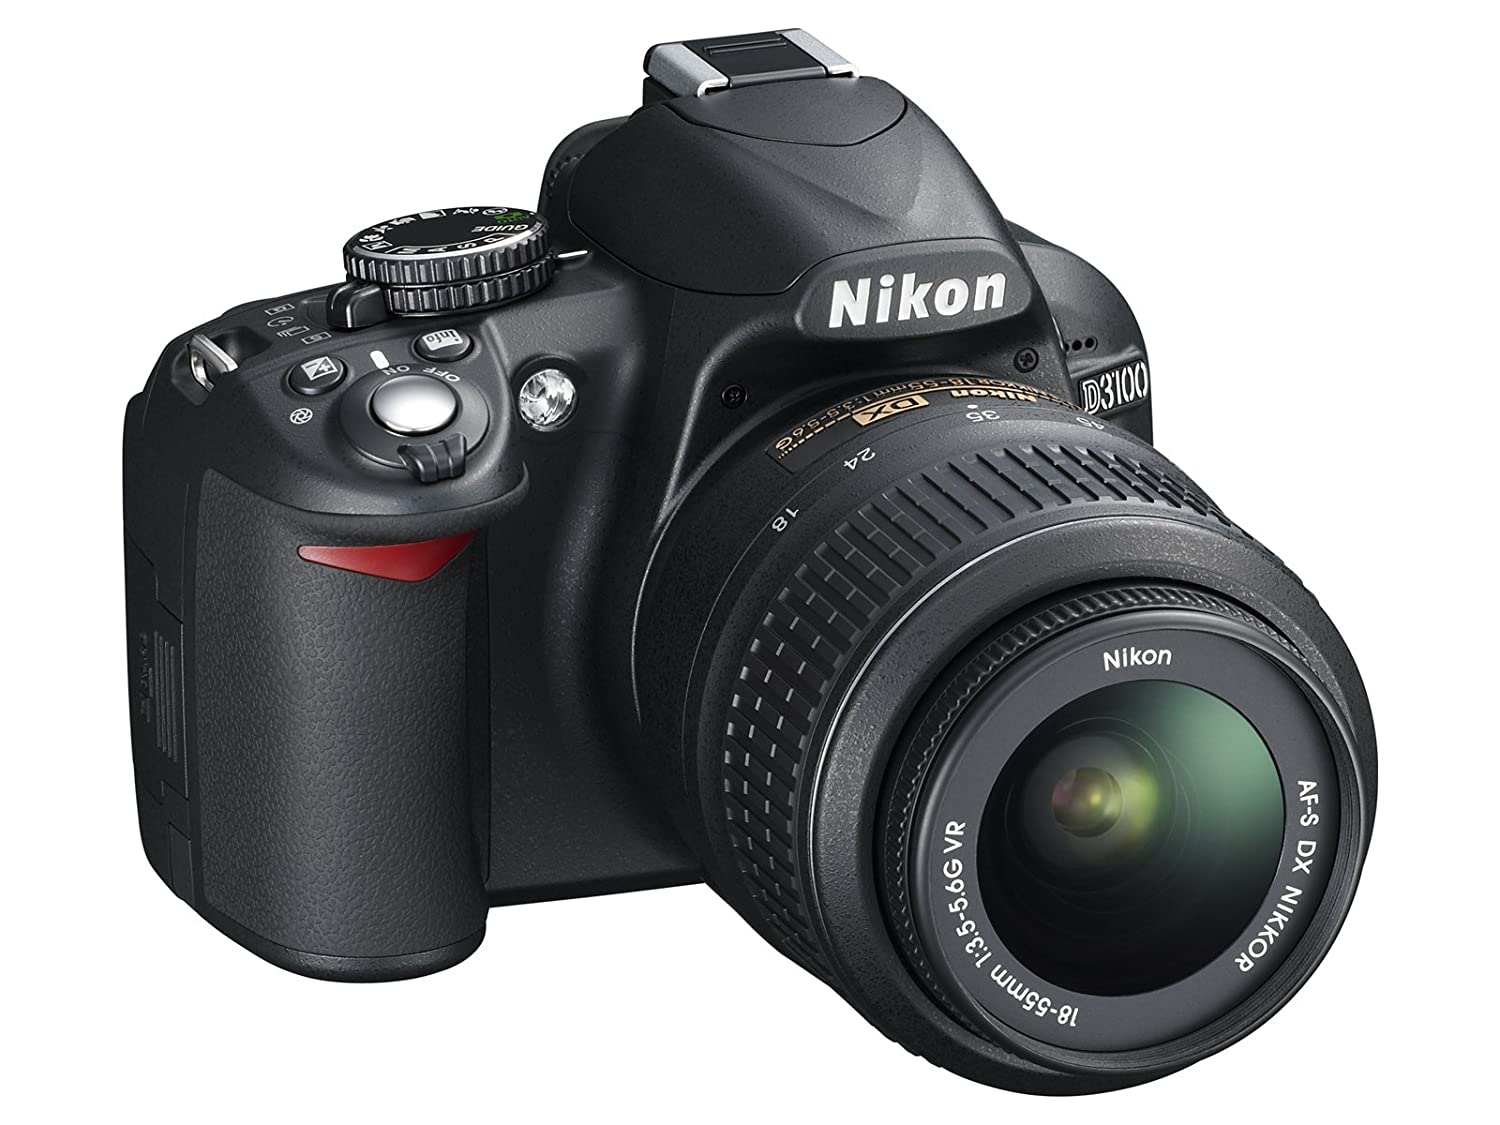 Amazon.com : Nikon D3100 DSLR Camera with 18-55mm f/3.5-5.6 Auto Focus-S  Nikkor Zoom Lens (Discontinued by Manufacturer) : Camera & Photo